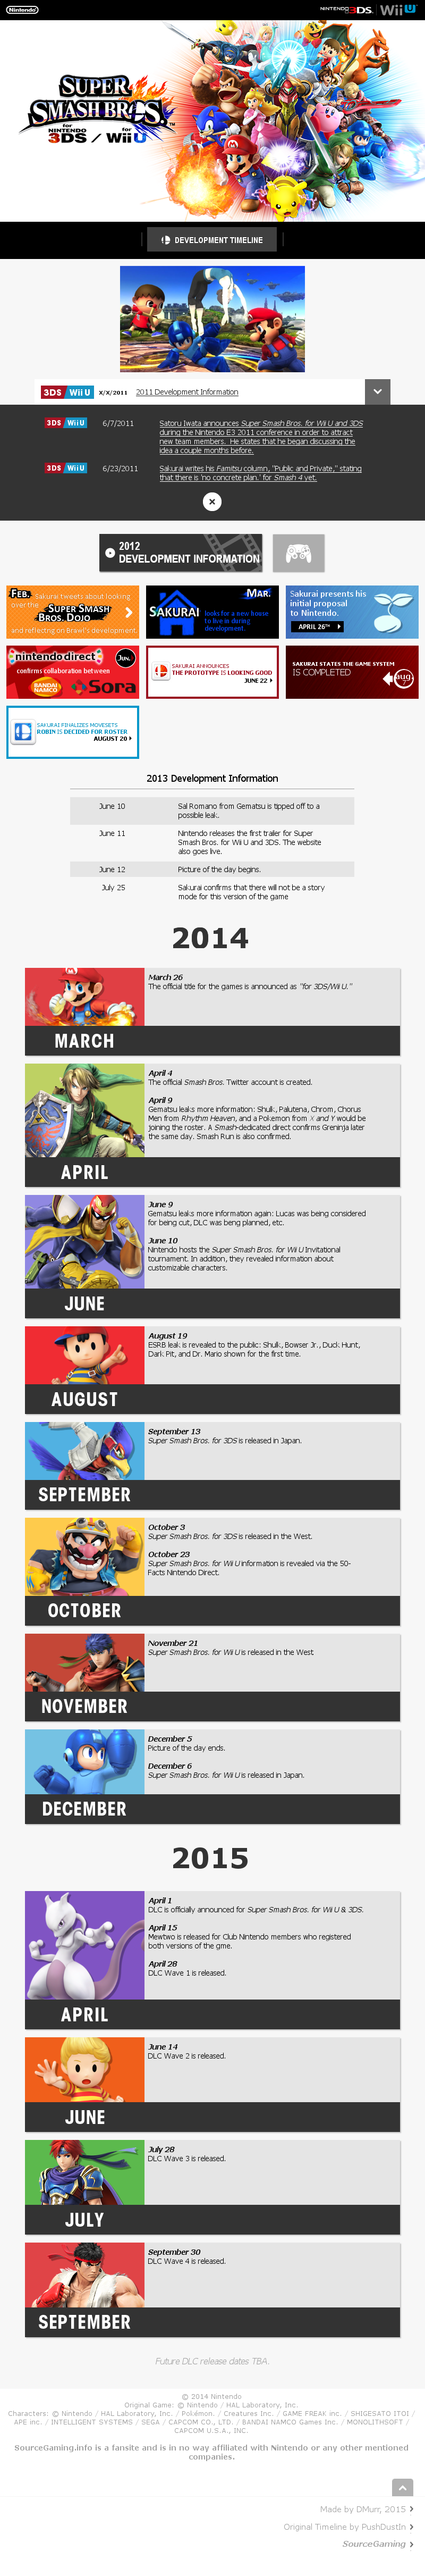 Smash 4 Development Timeline